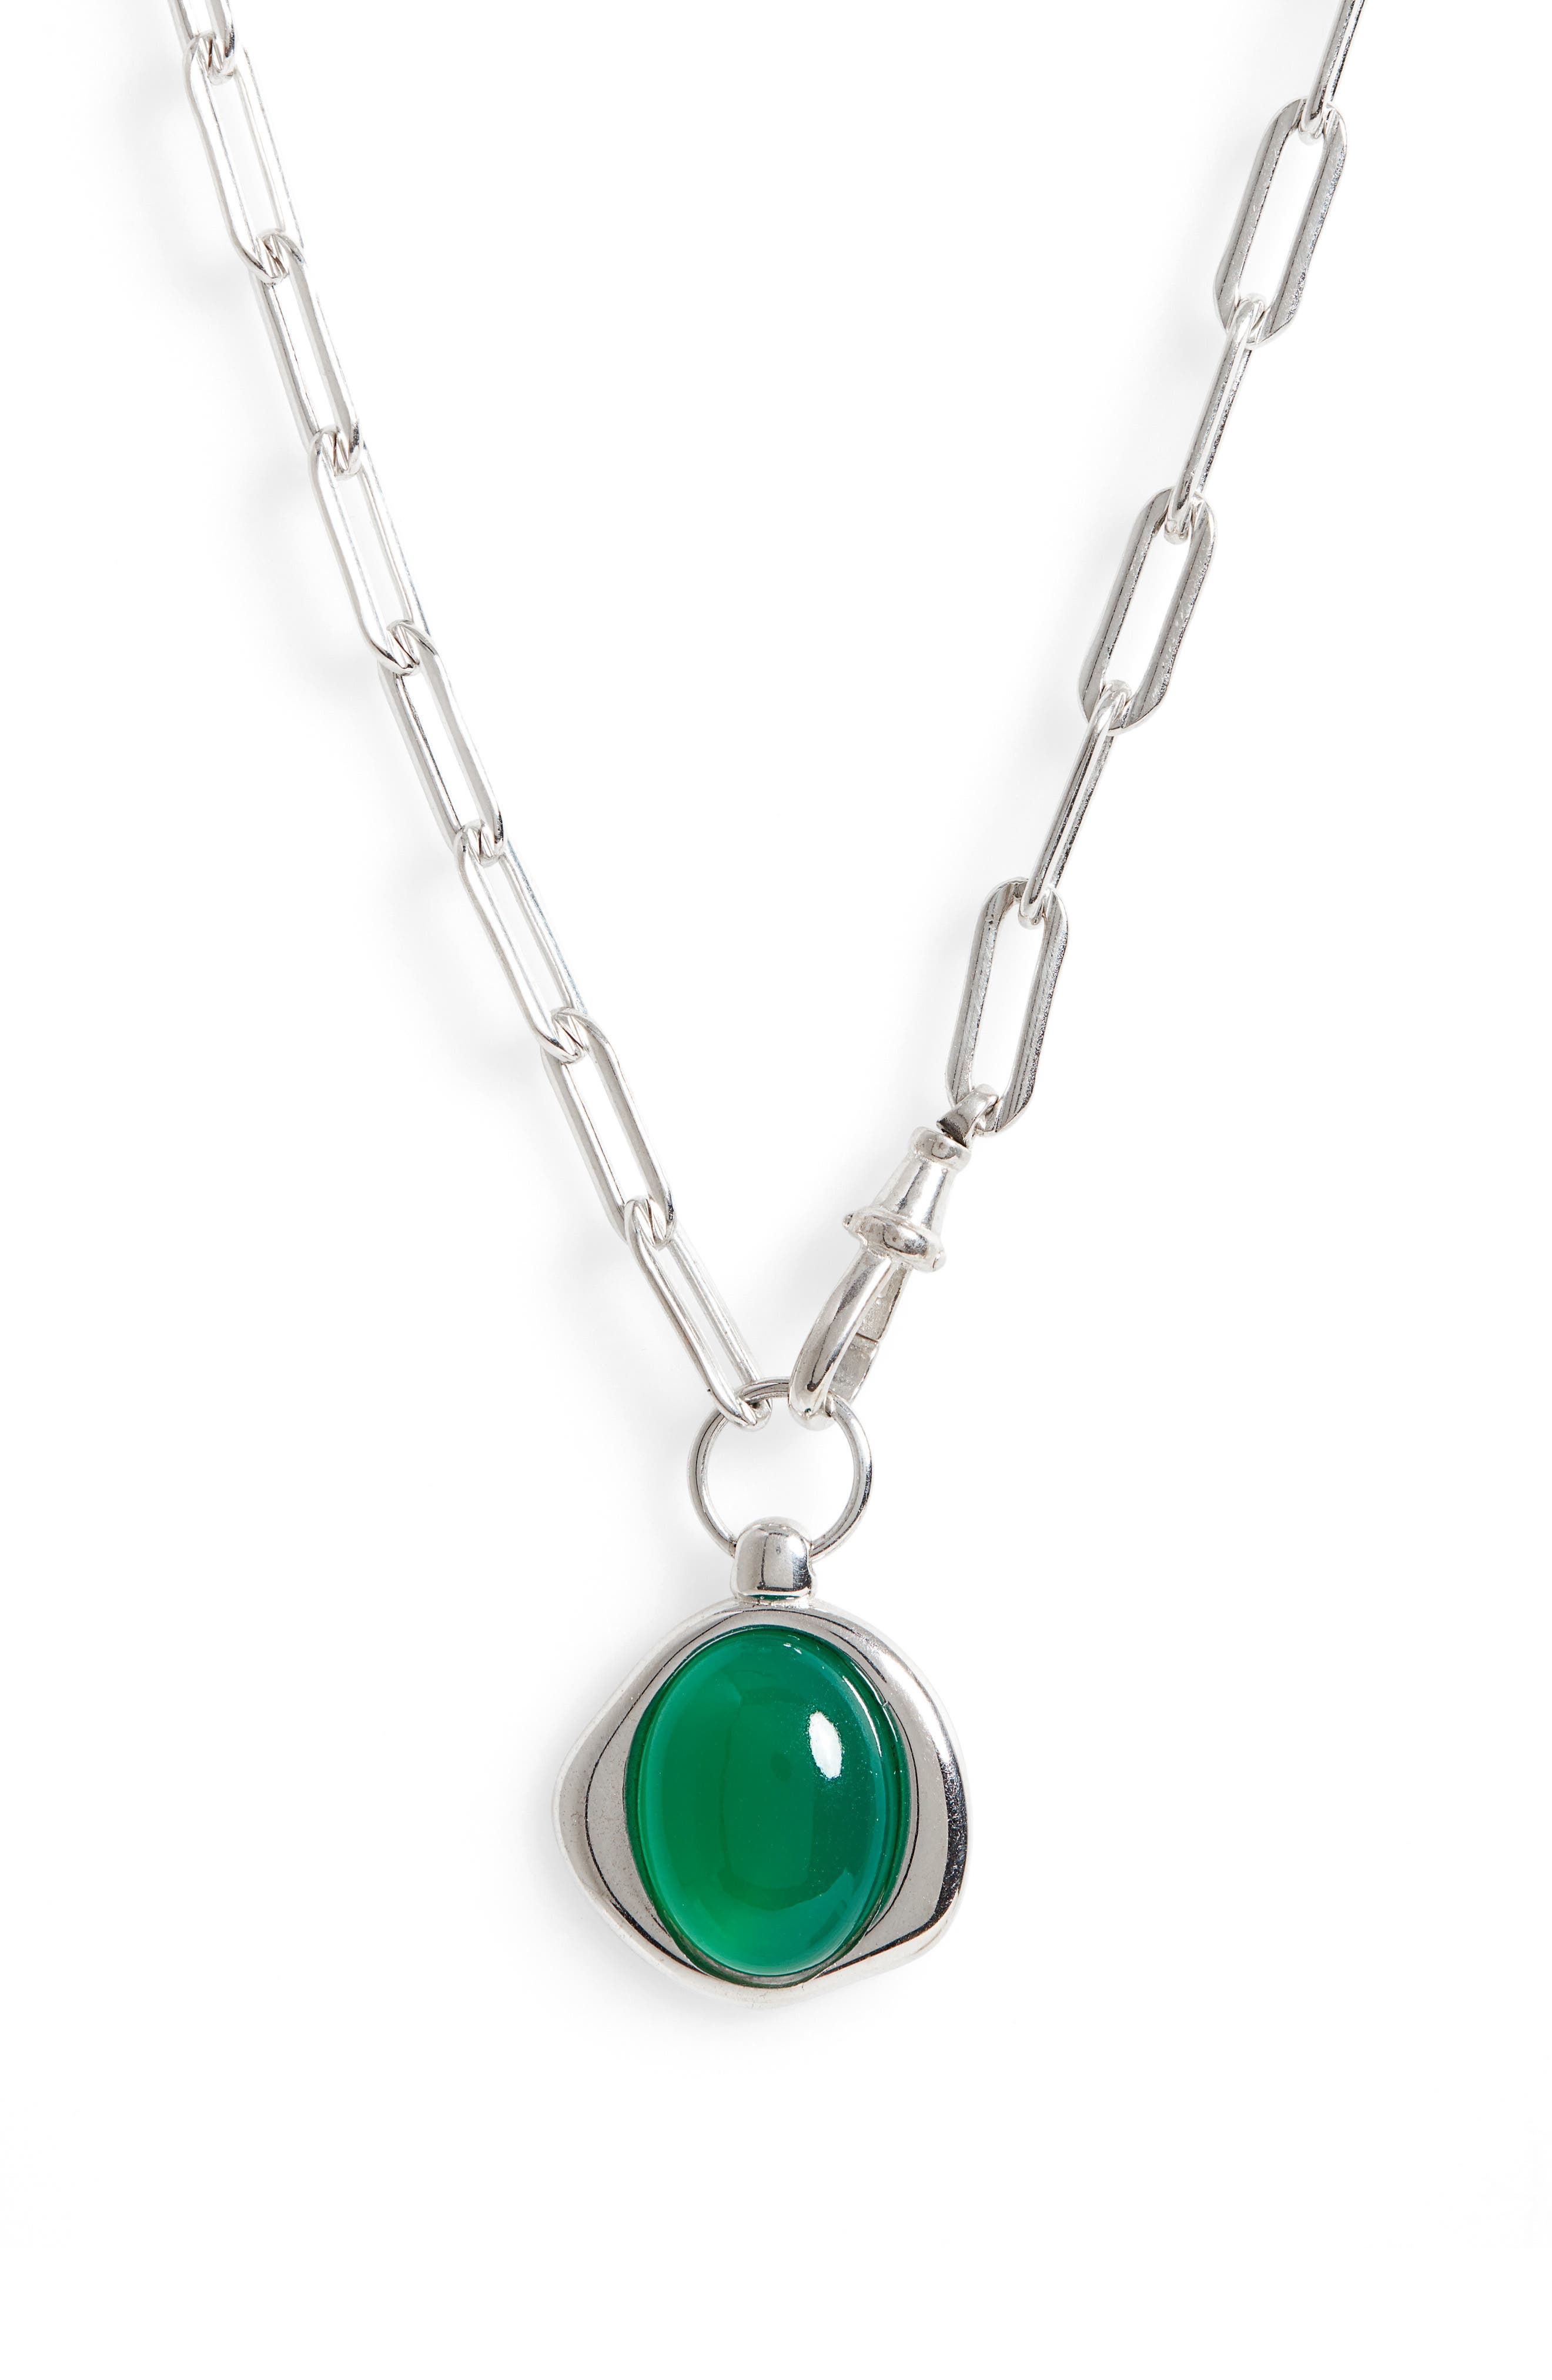 Green Agate Pendant Necklace